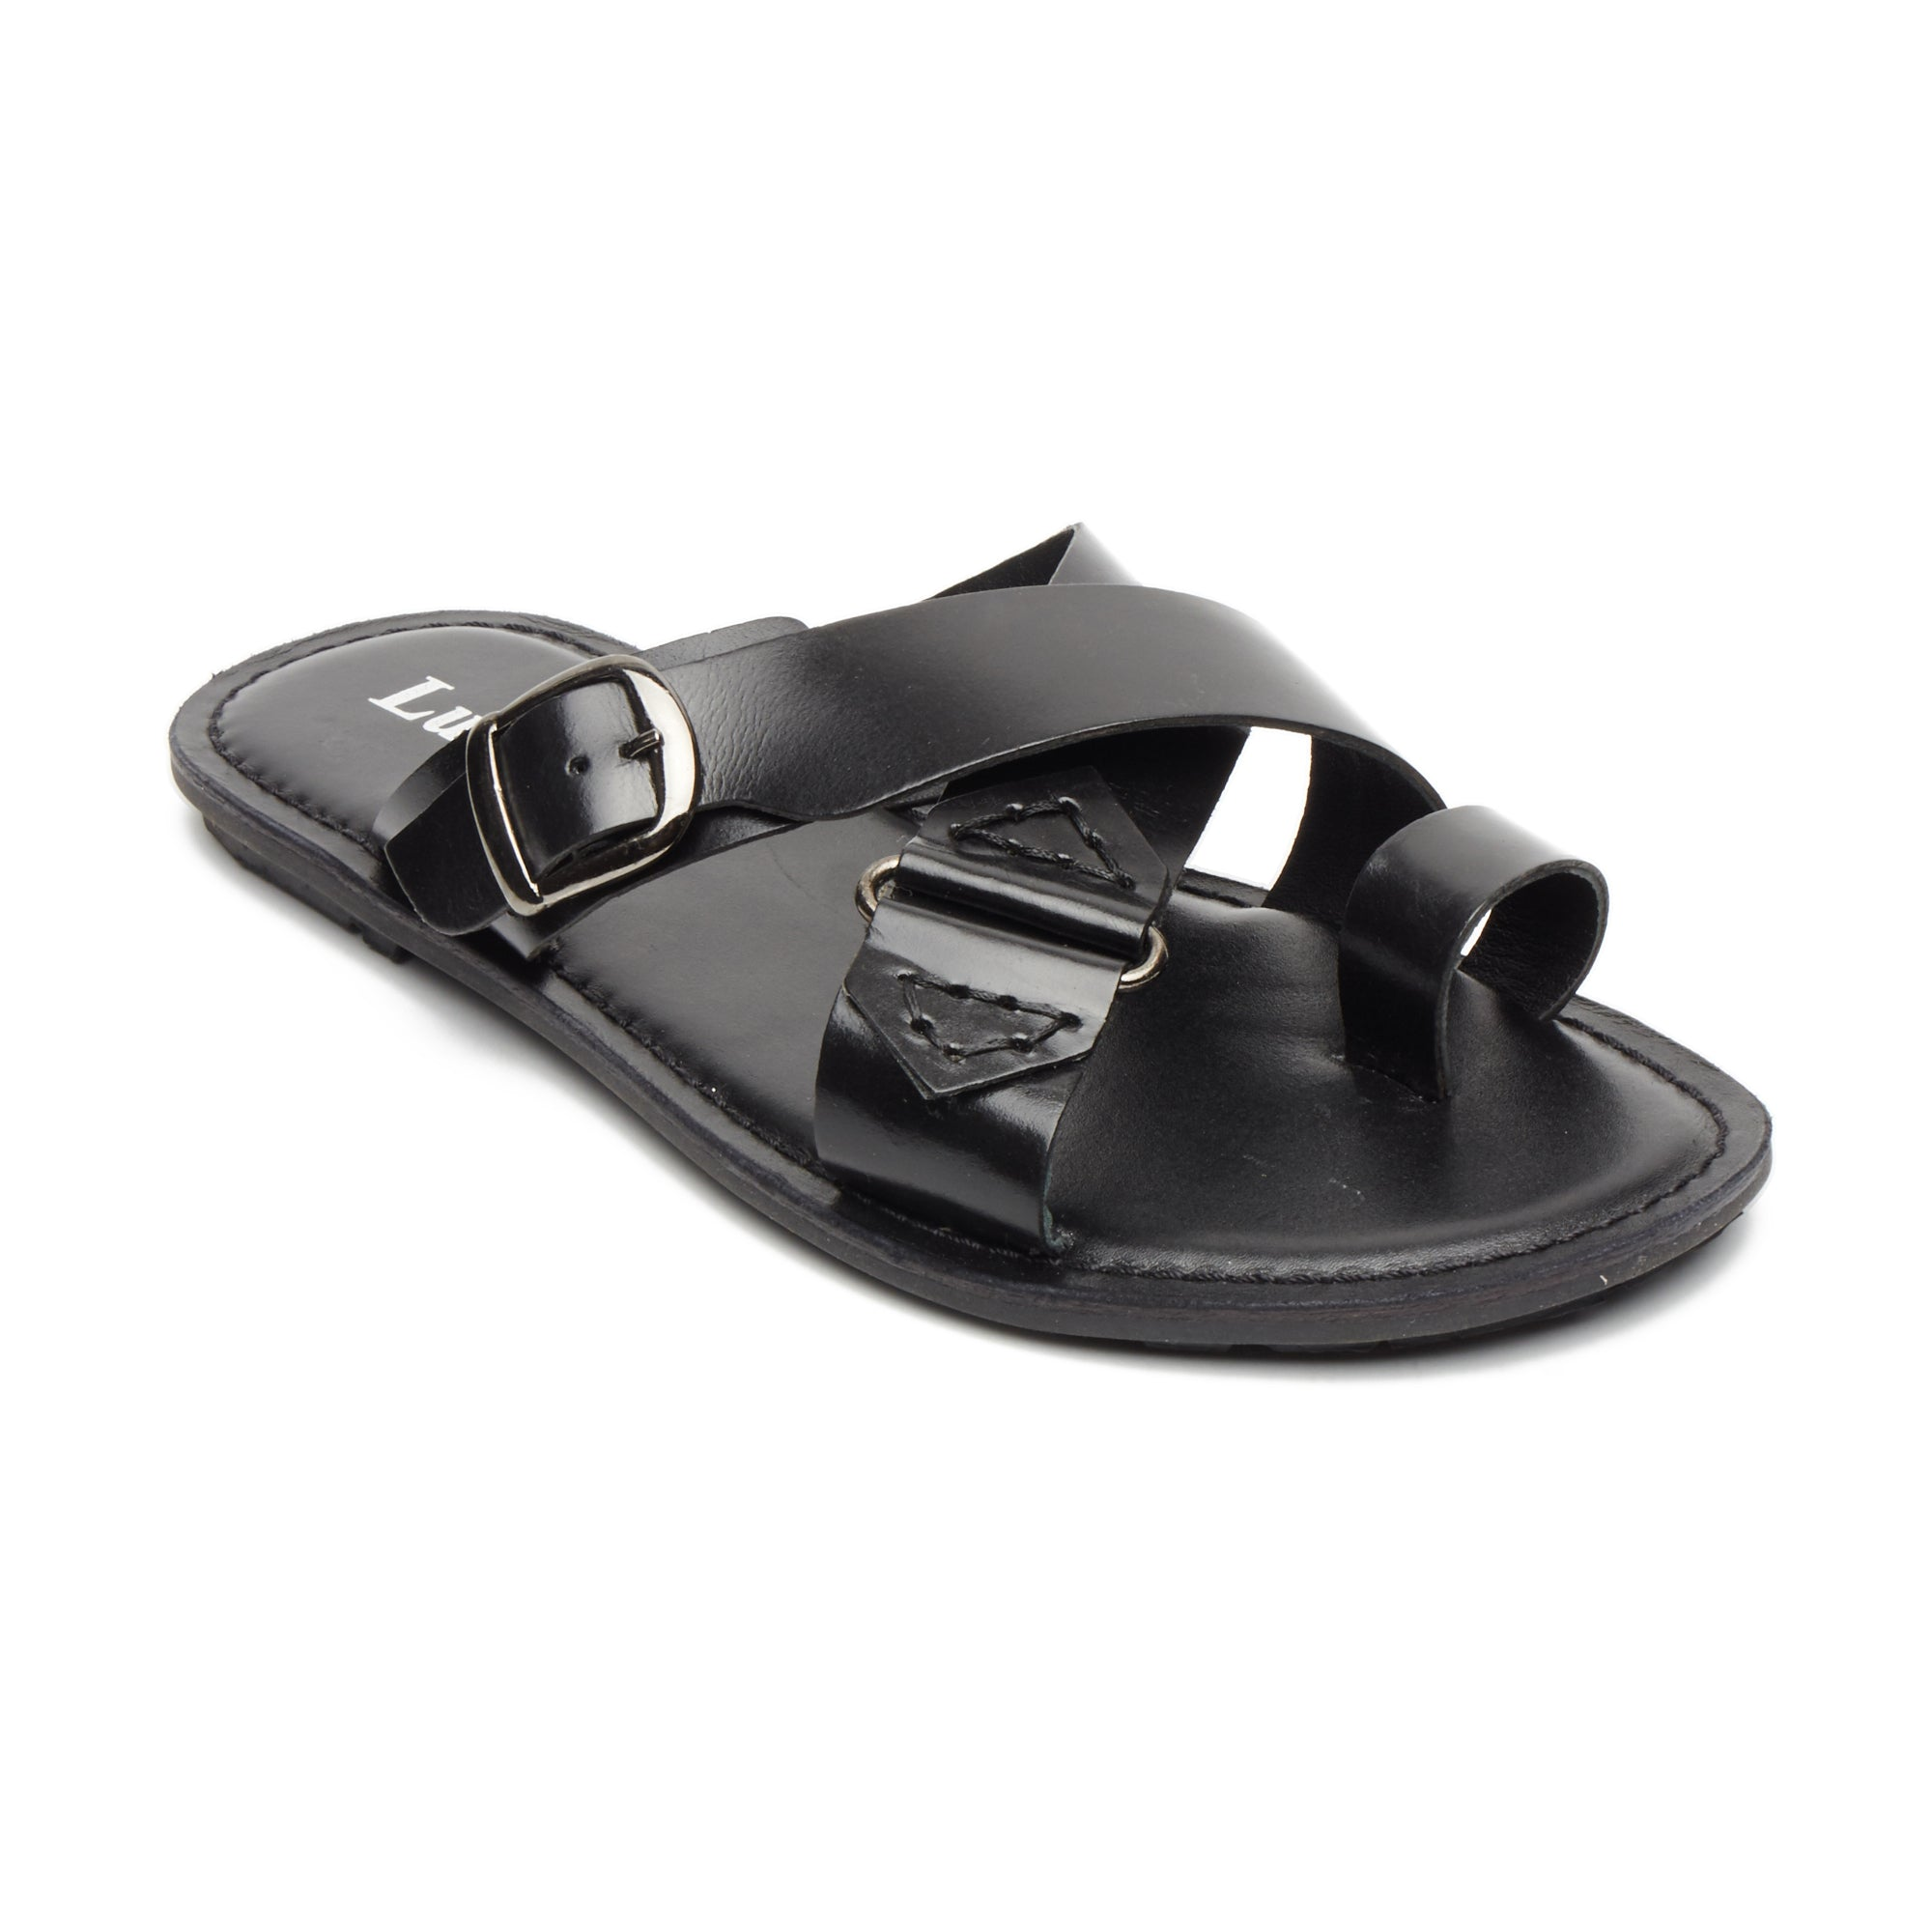 Mens Leather Sandals 61246